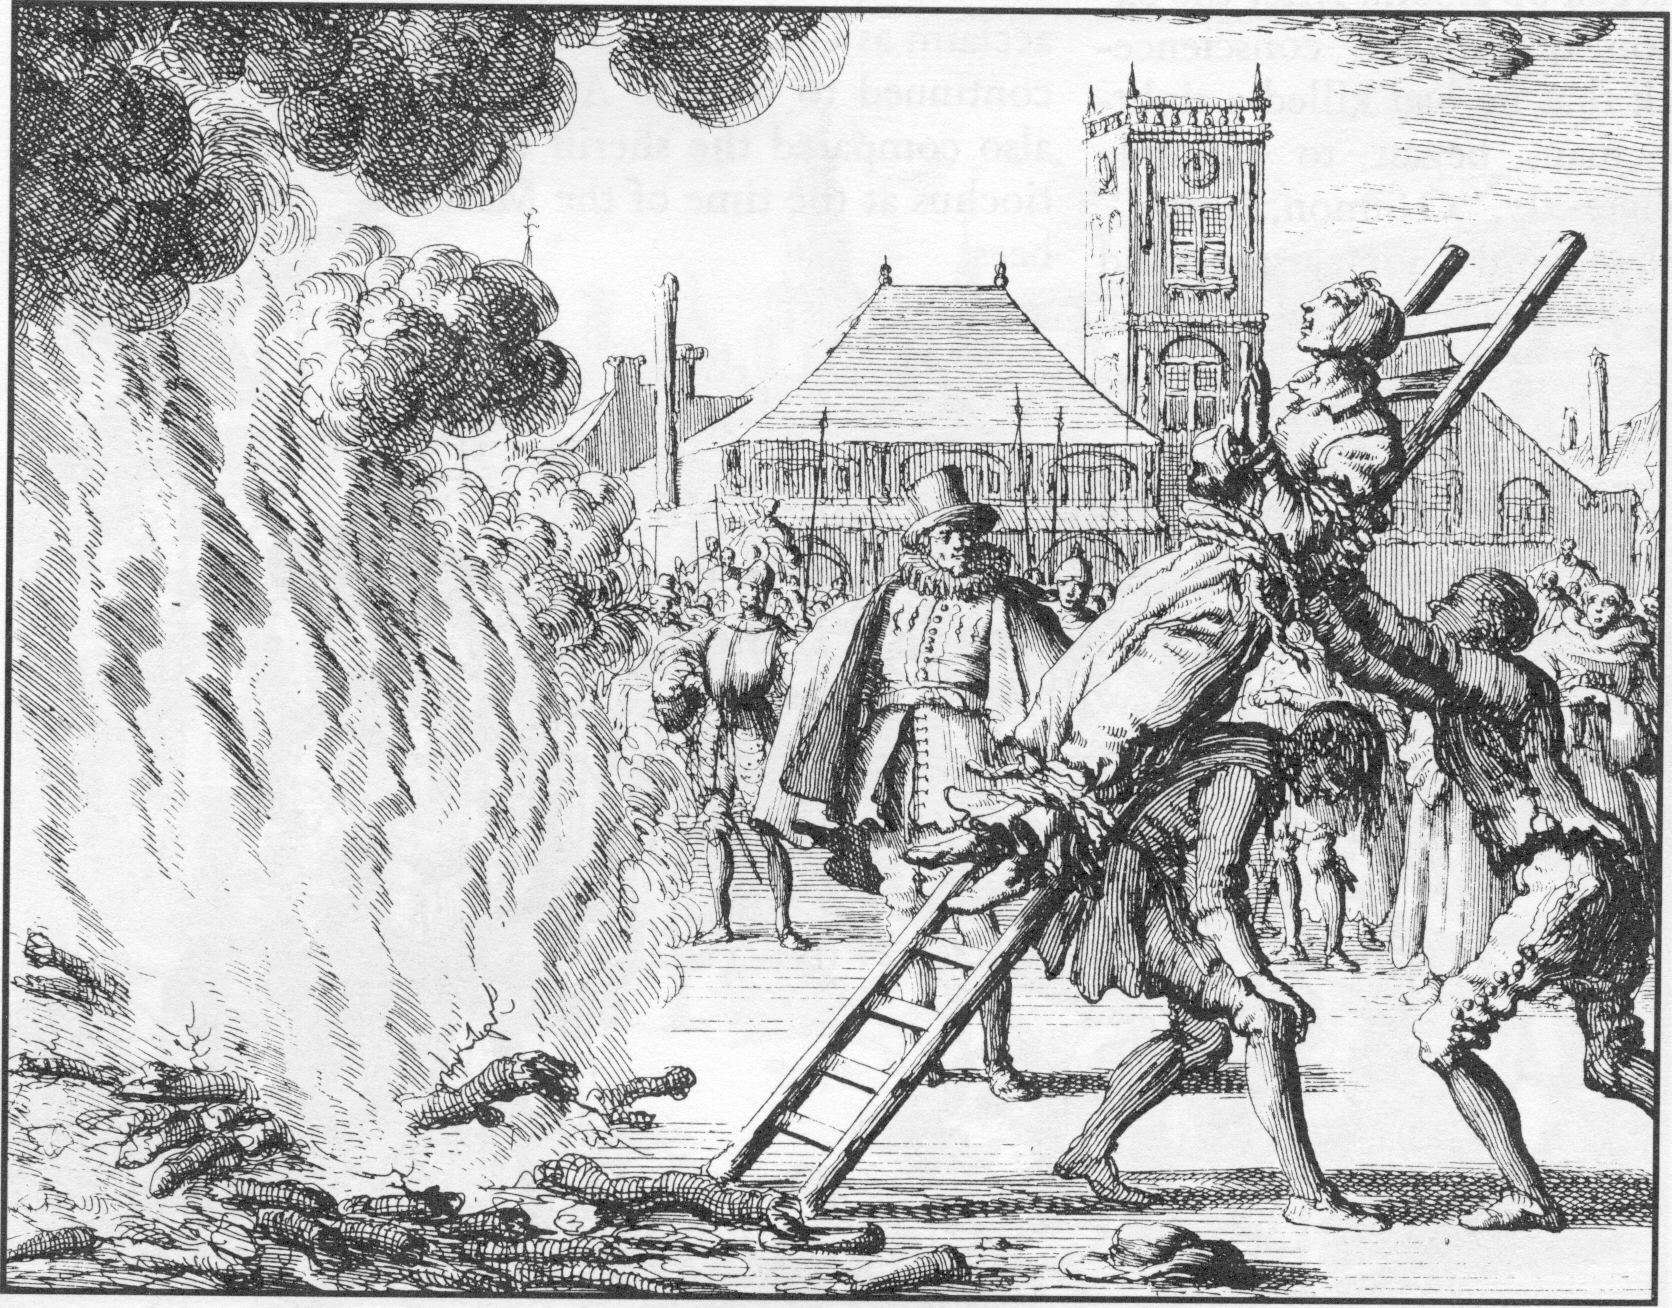 'Anabaptists' being burned.